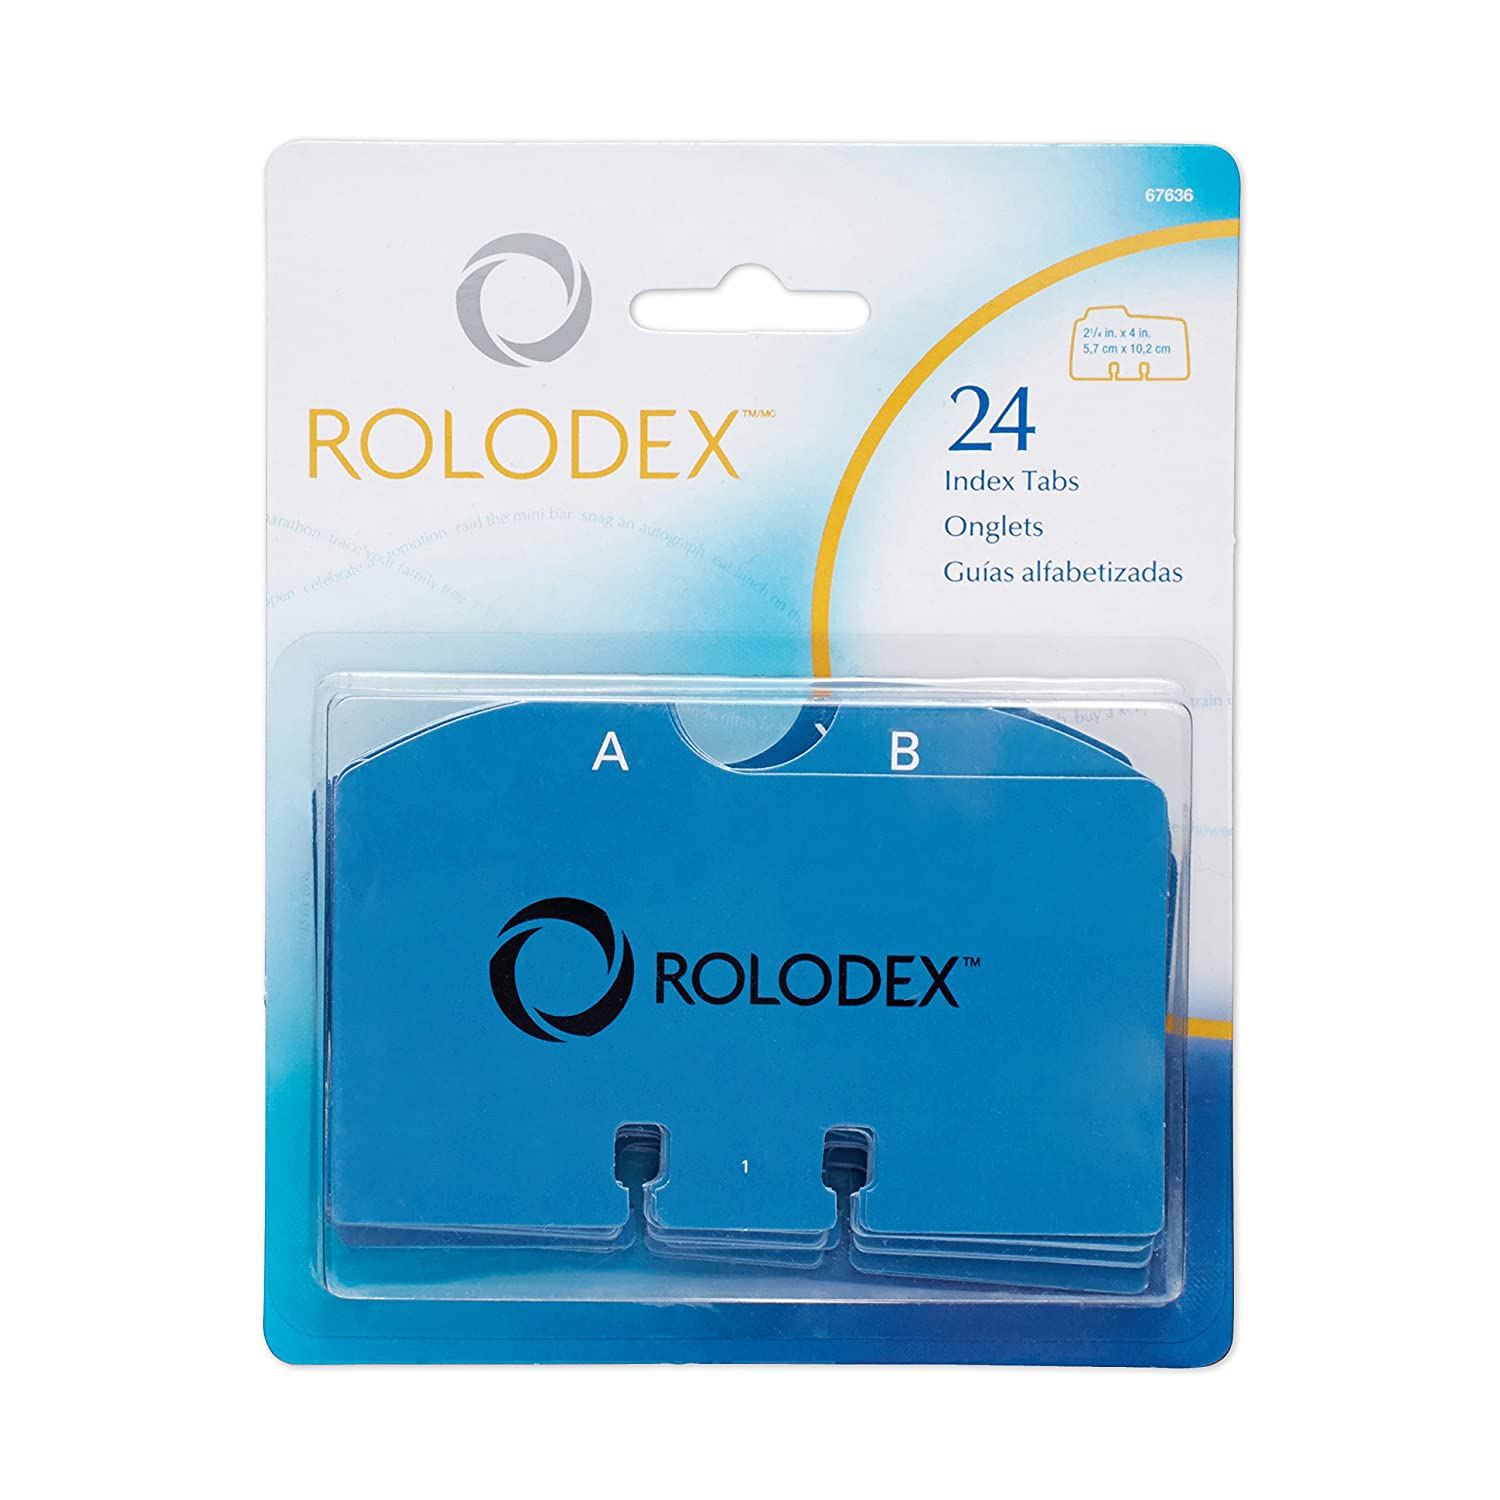 Rolodex A to Z Index Tabs (67636)